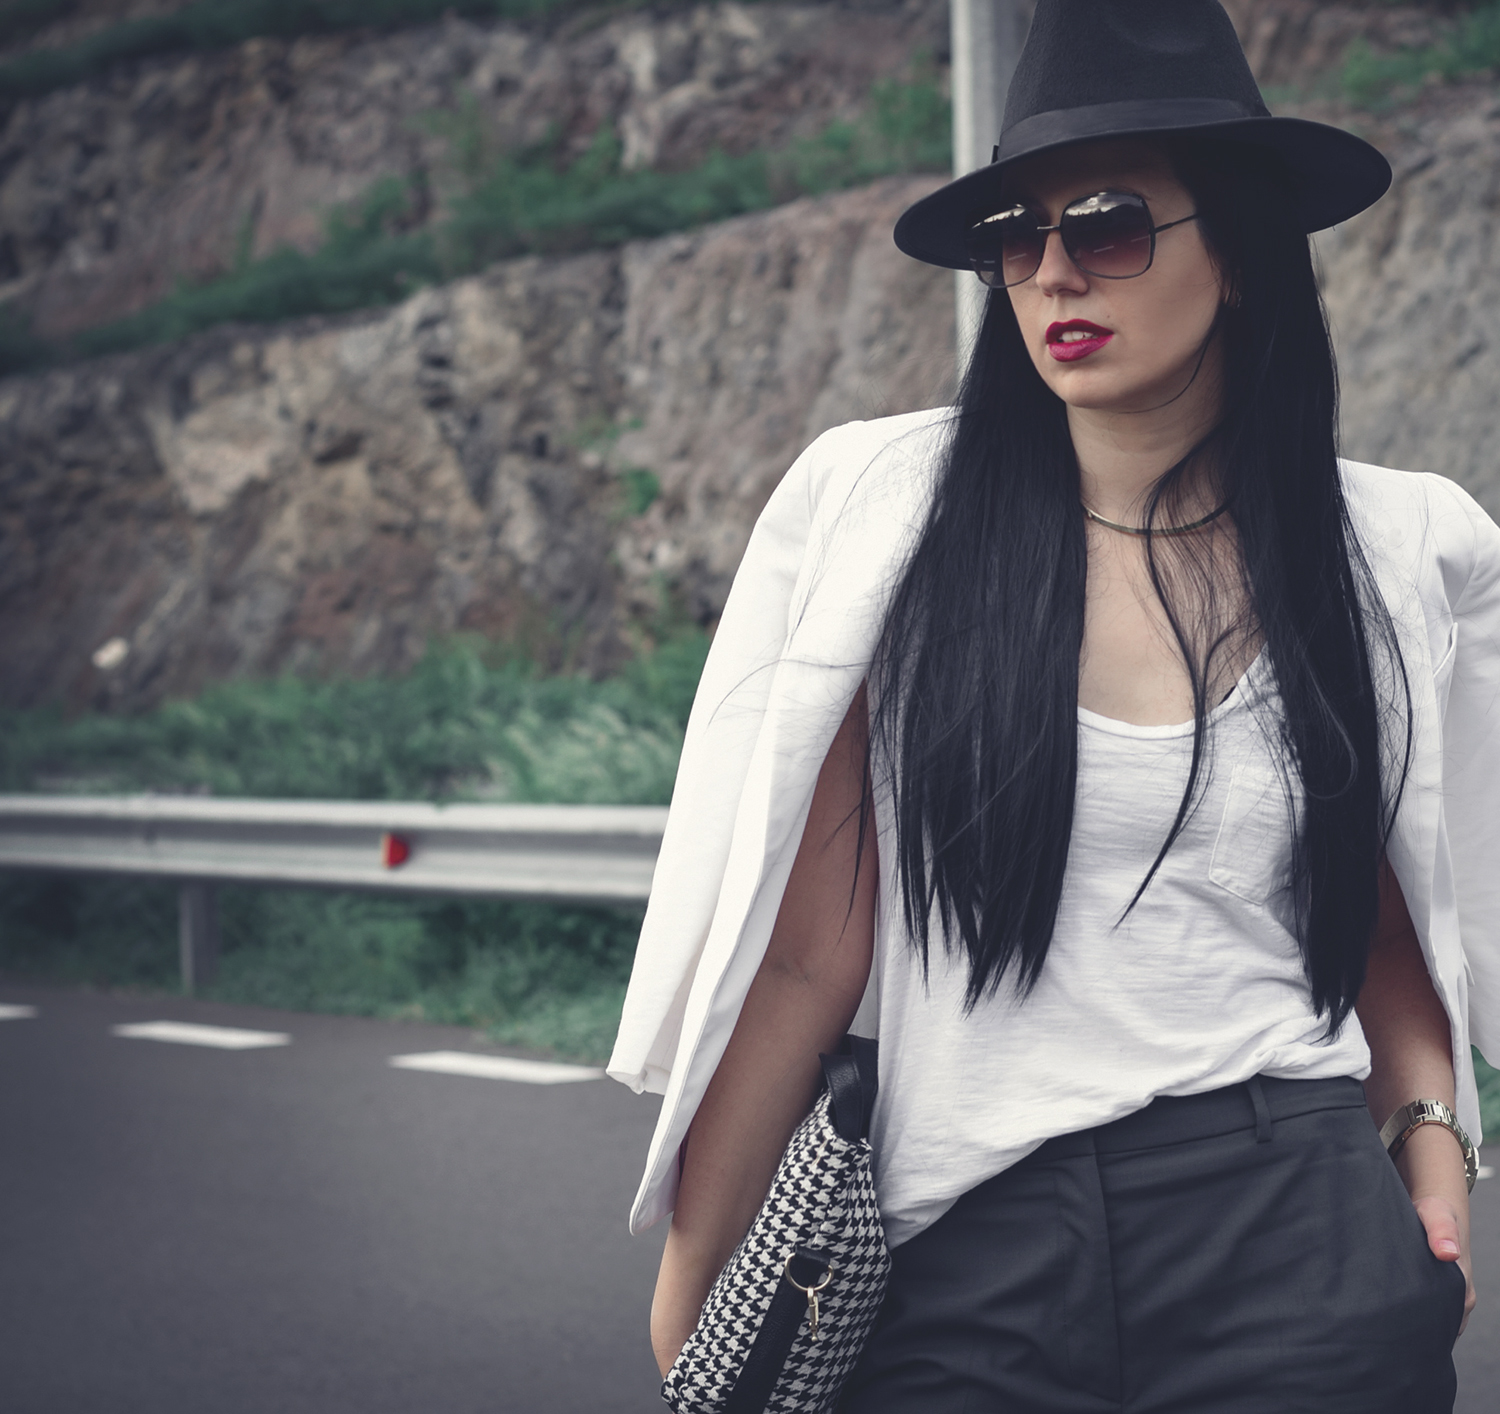 stylish-look-hat-white-blazer-long-straight-hair-chic-model-photography-fashion-blogger-outfit-minimalist (2)